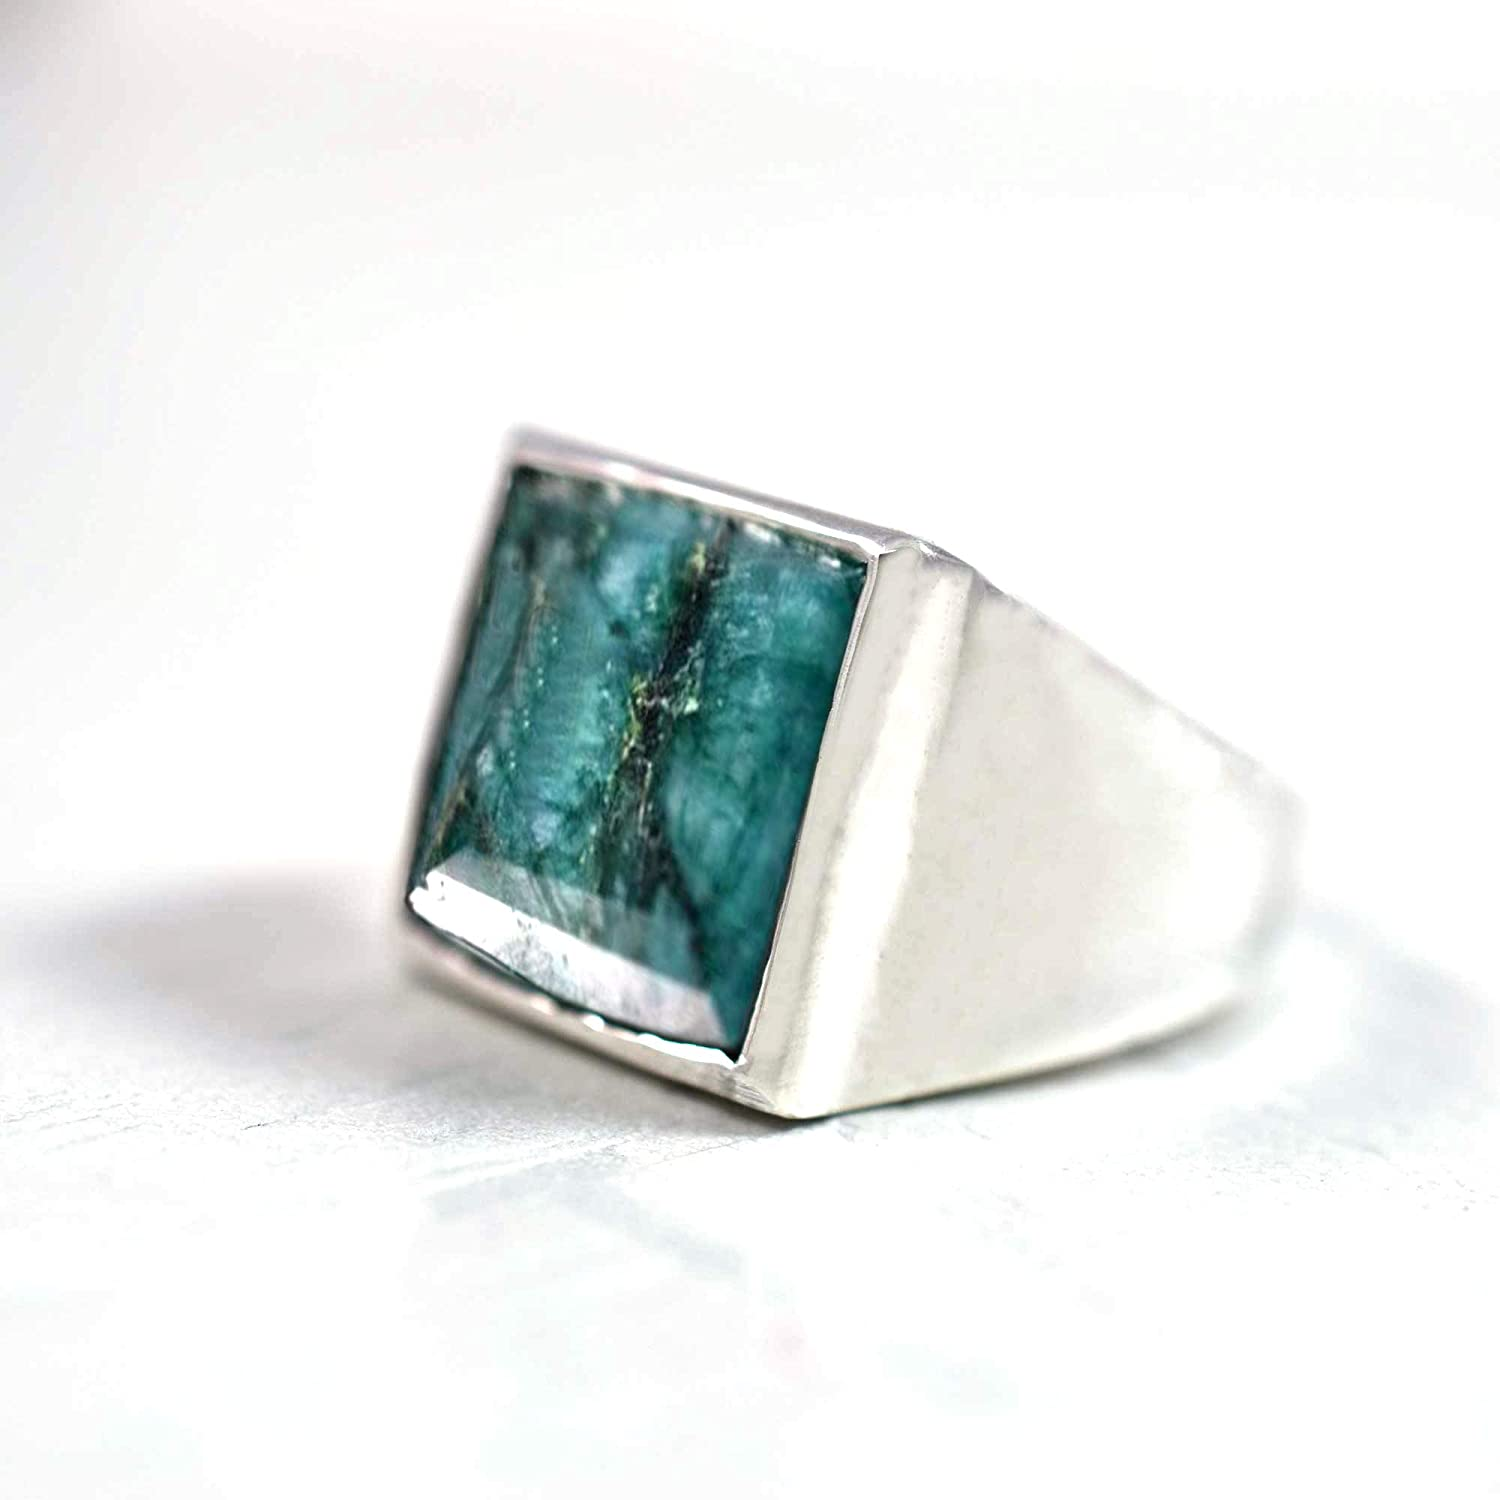 Raw Emerald Silver Ring Green Sterling Co 25% OFF 925 Sale special price